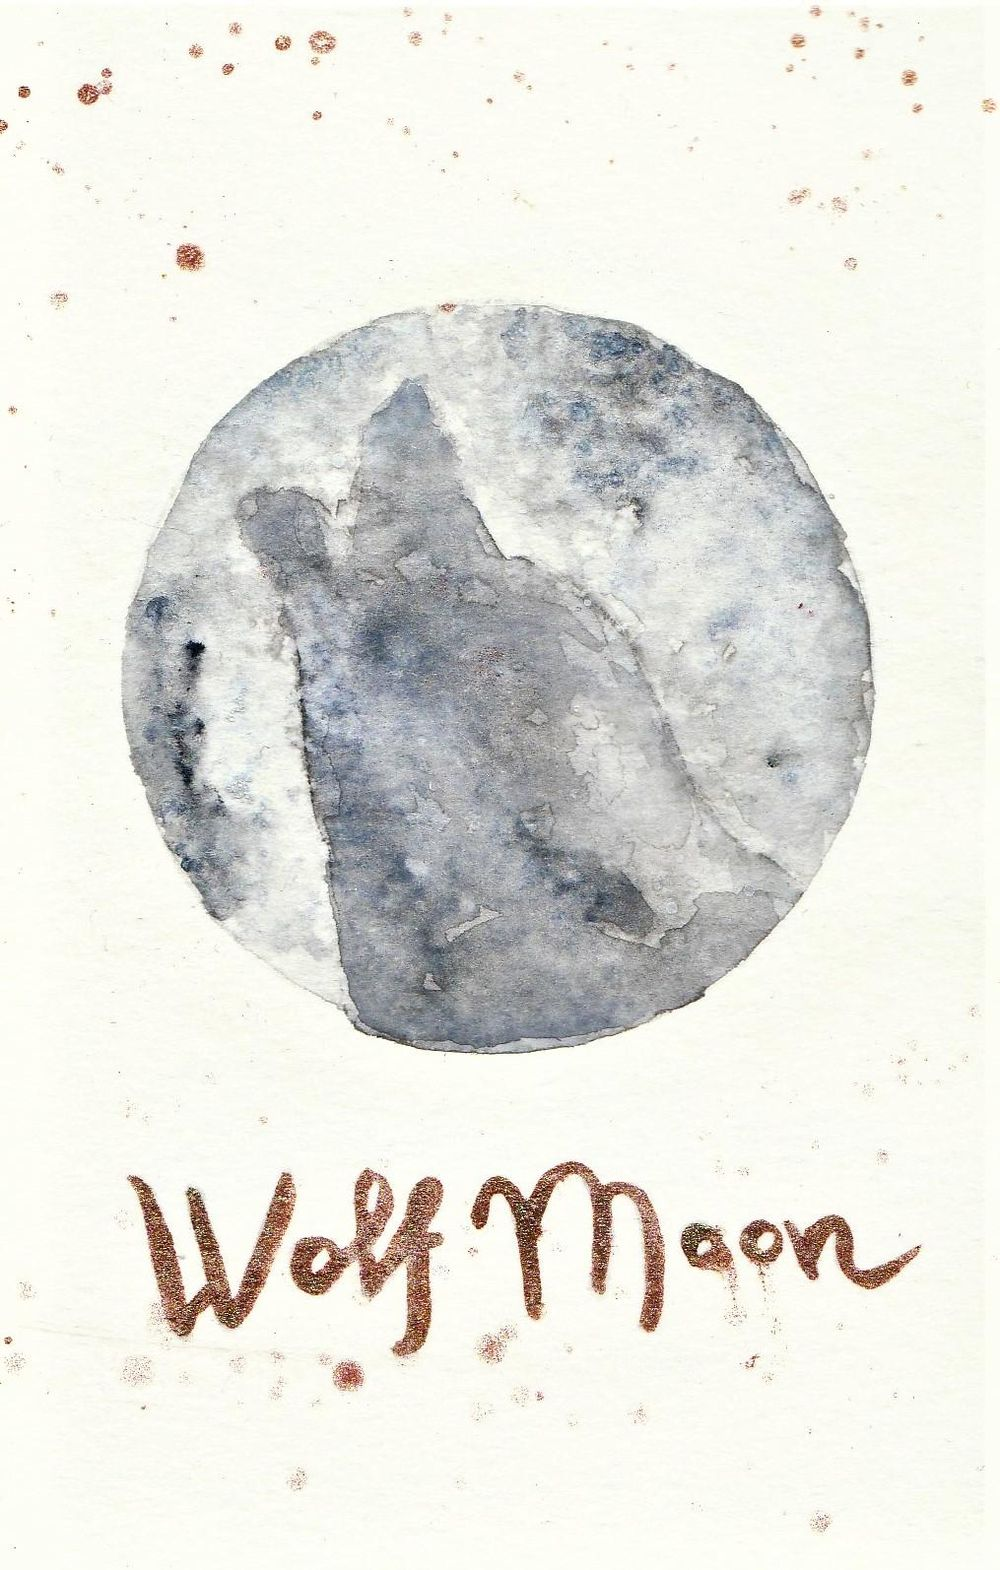 Blue Moon - image 2 - student project